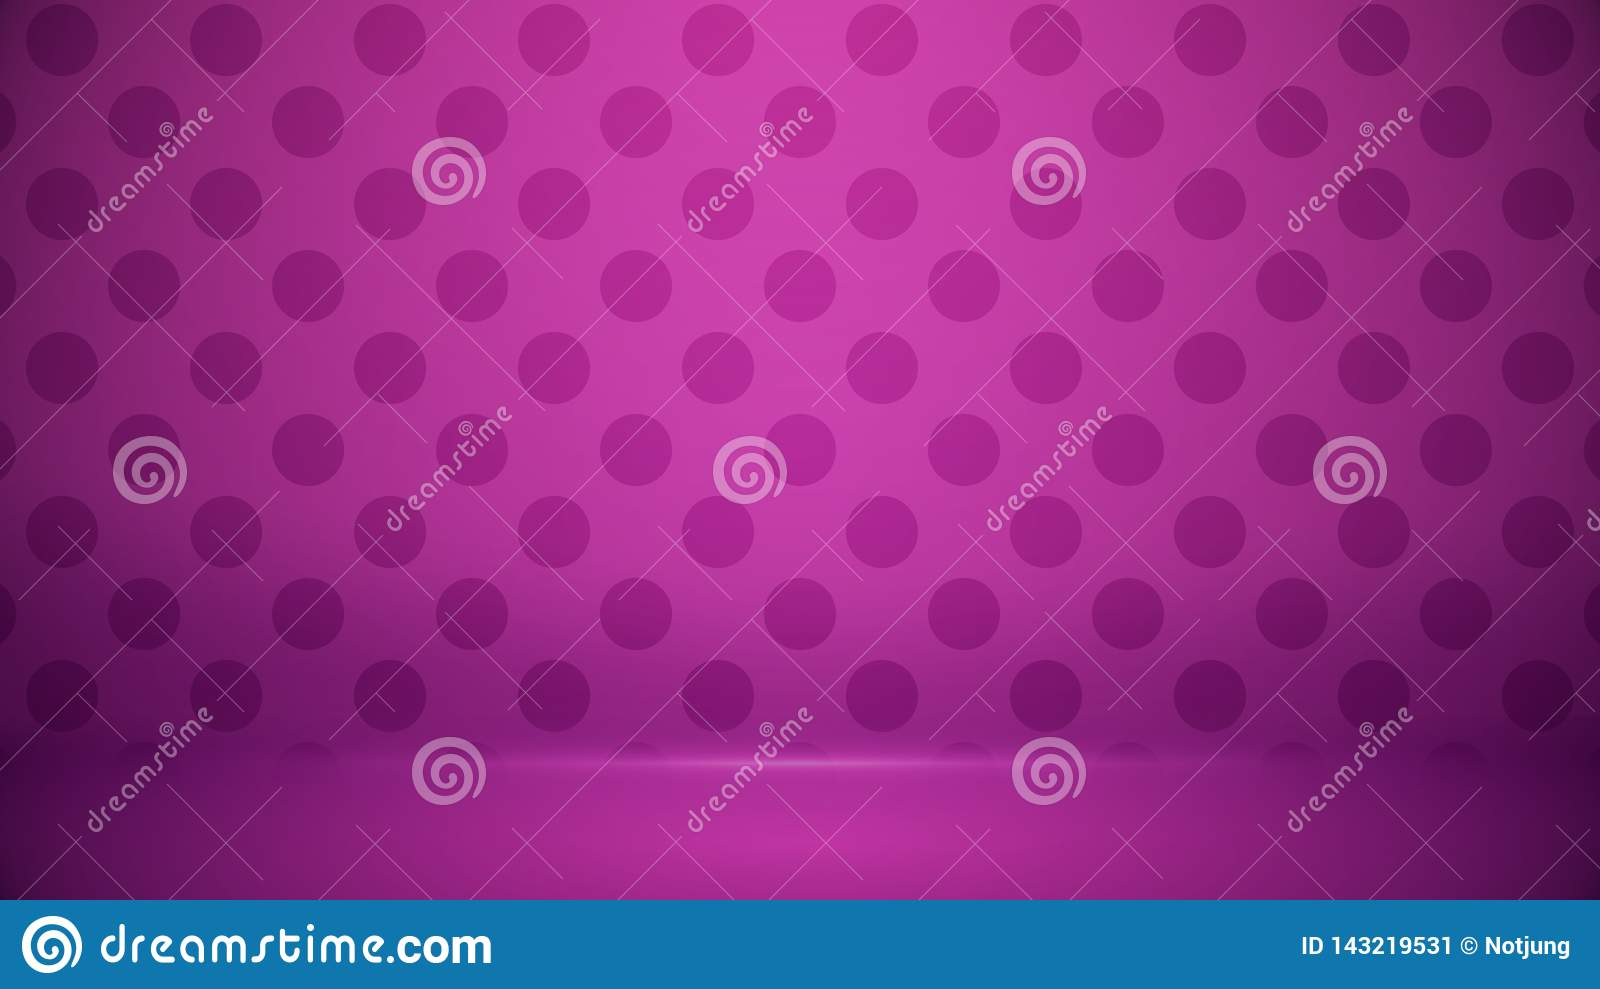 Studio room Blurred background Soft gradient pastel. With Polka dots use as Business backdrop, Template mock up for display of